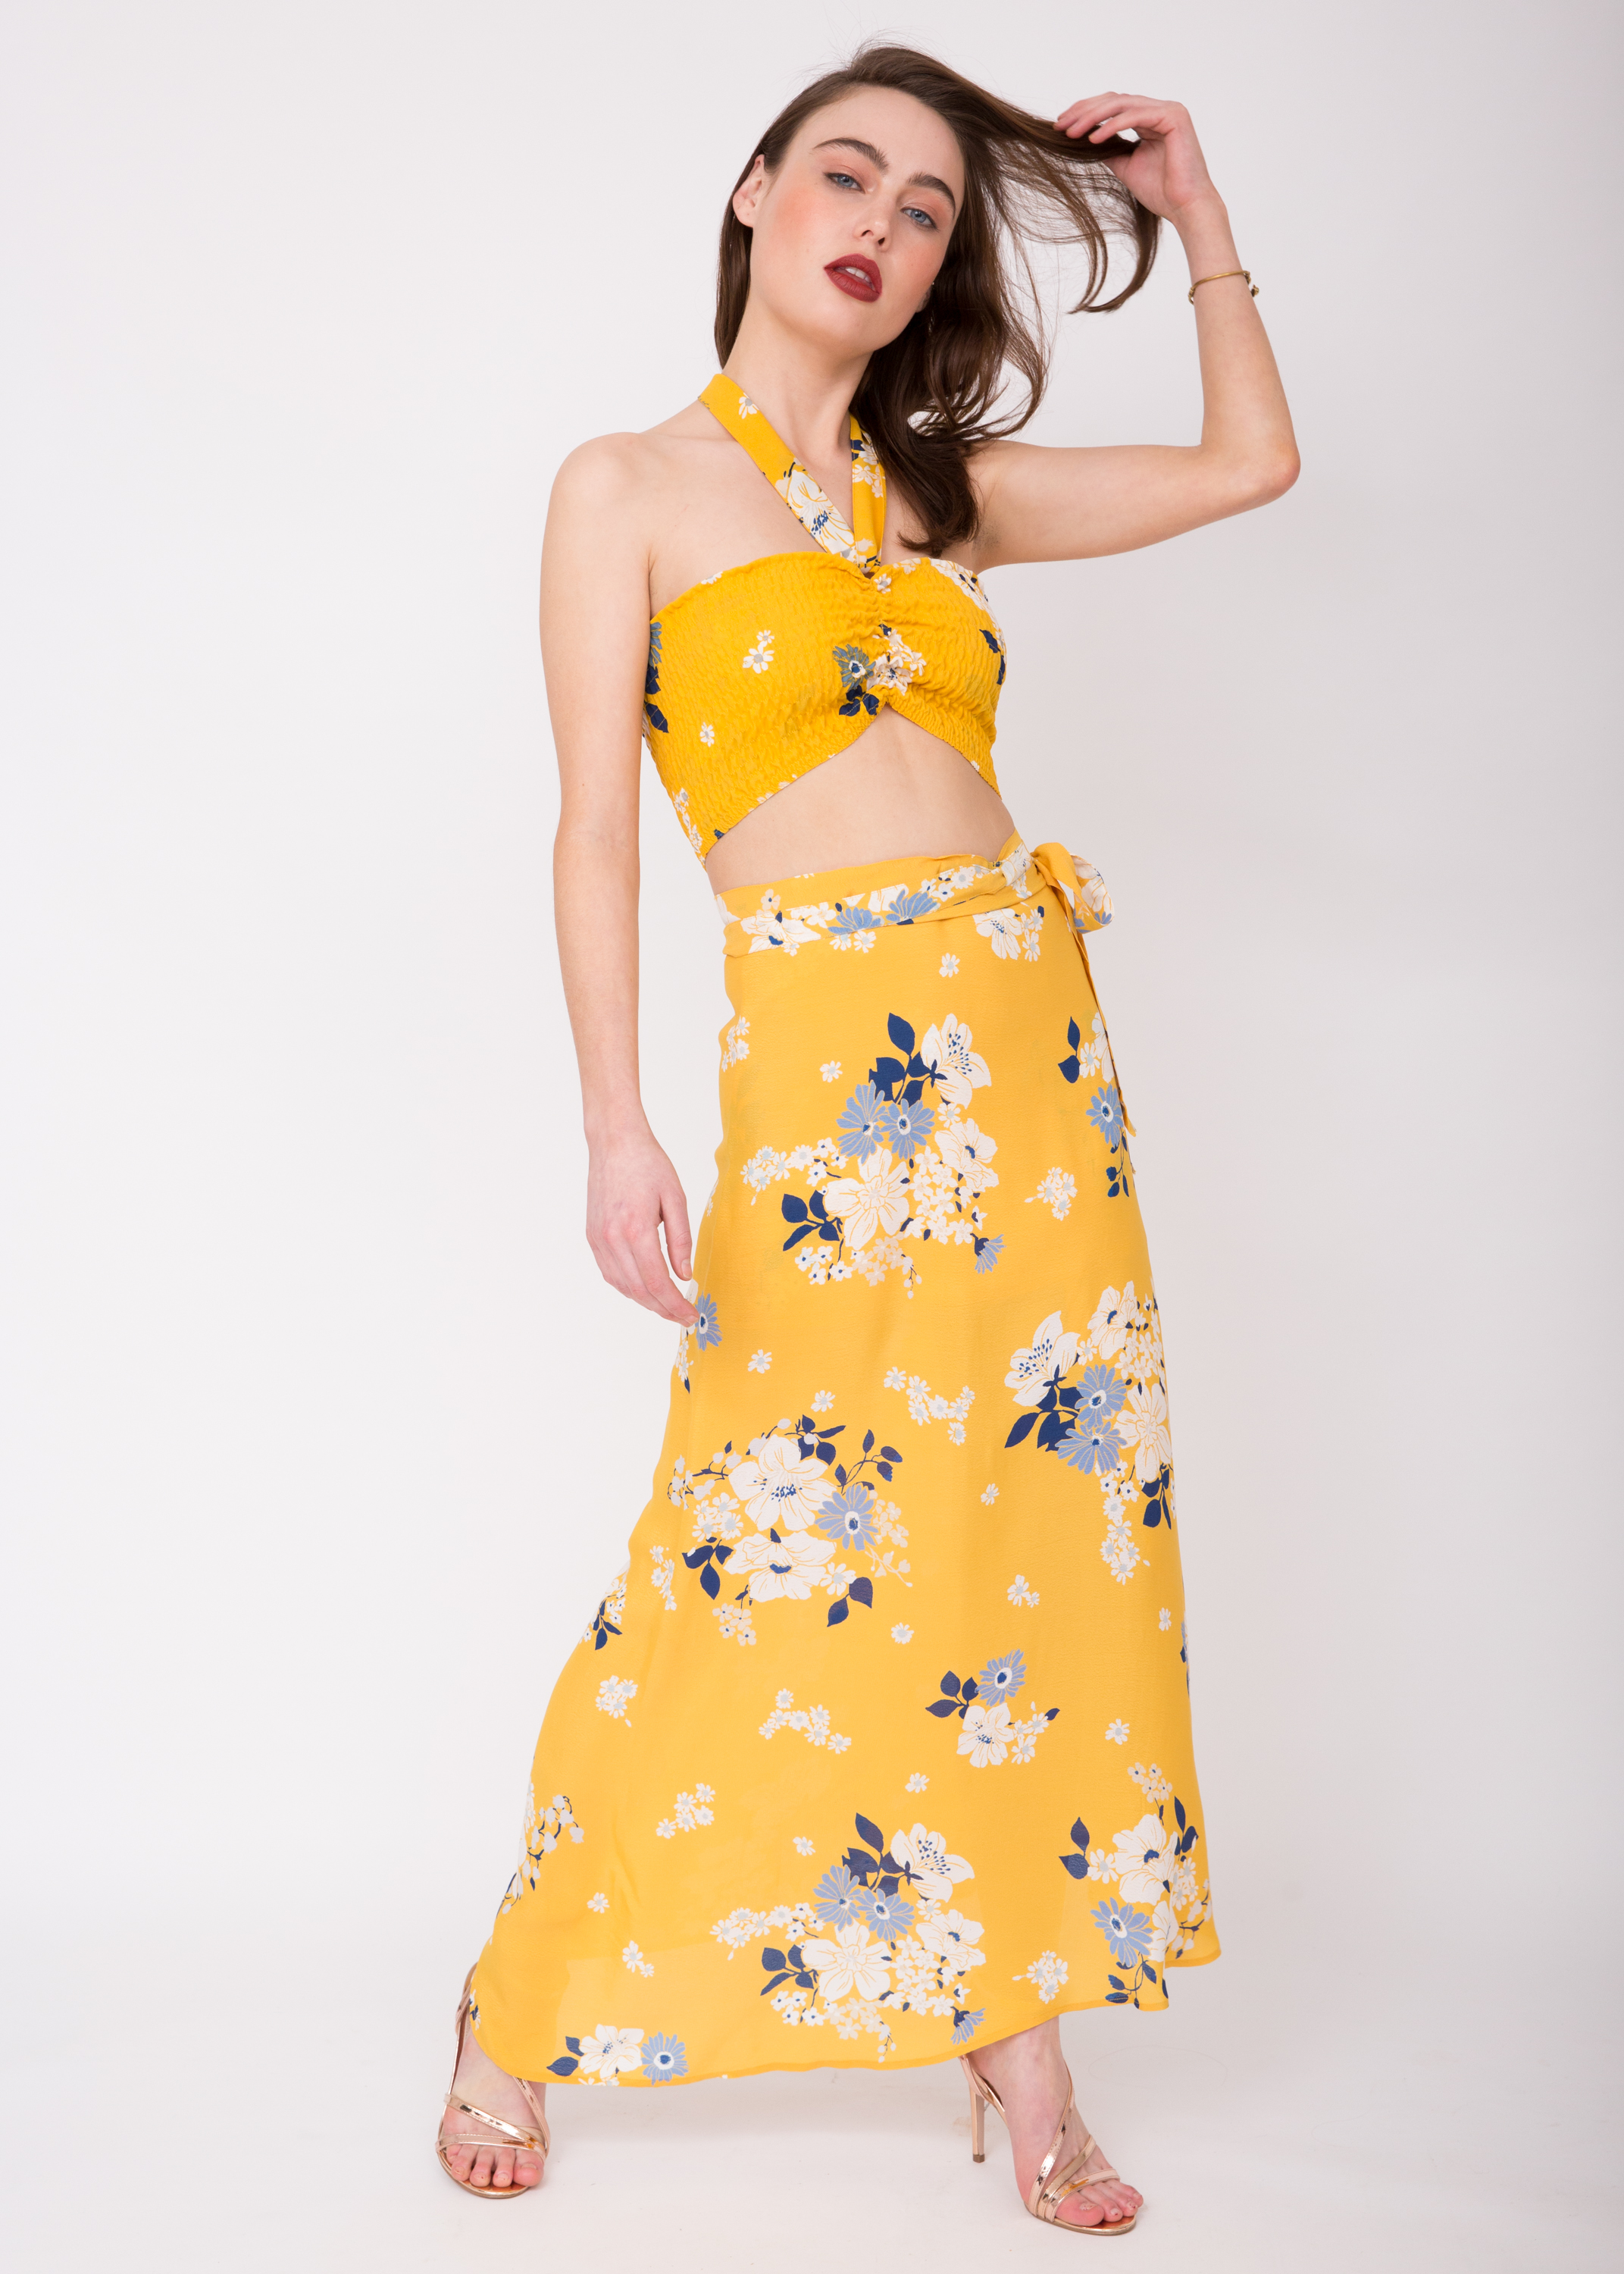 7d661247712 Yellow Floral Print Maxi Skirt - Gomes Weine AG